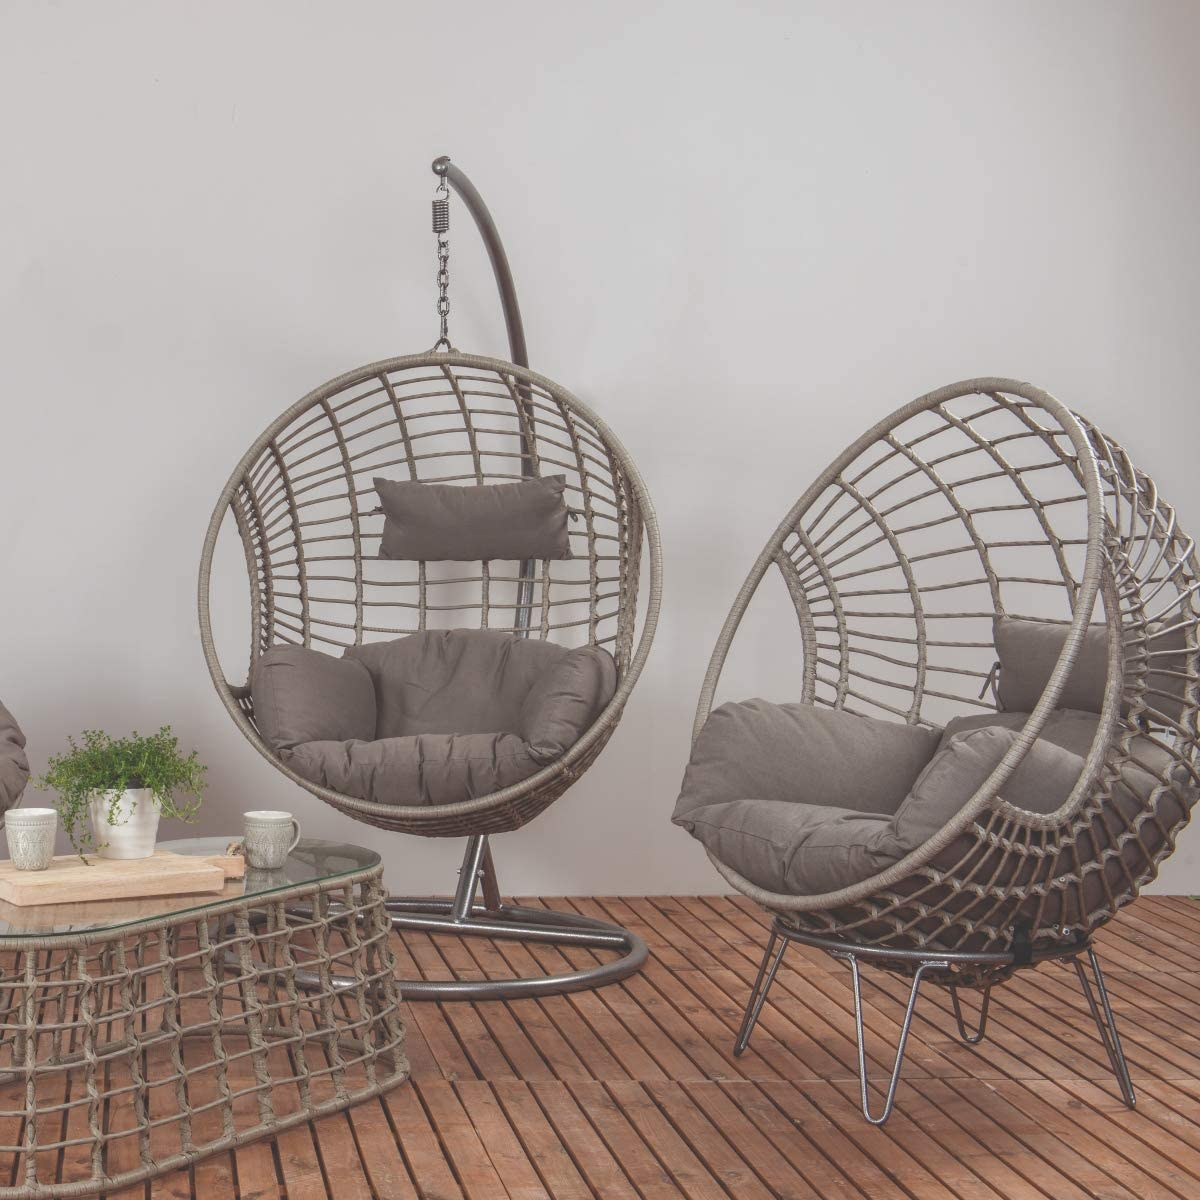 Dawsons Living Milan Hanging Egg Chair - Outdoor and Indoor Rattan Weave Swing Hammock - Hanging Stand and Floor Stand - Grey: Amazon.co.uk: Garden & Outdoors